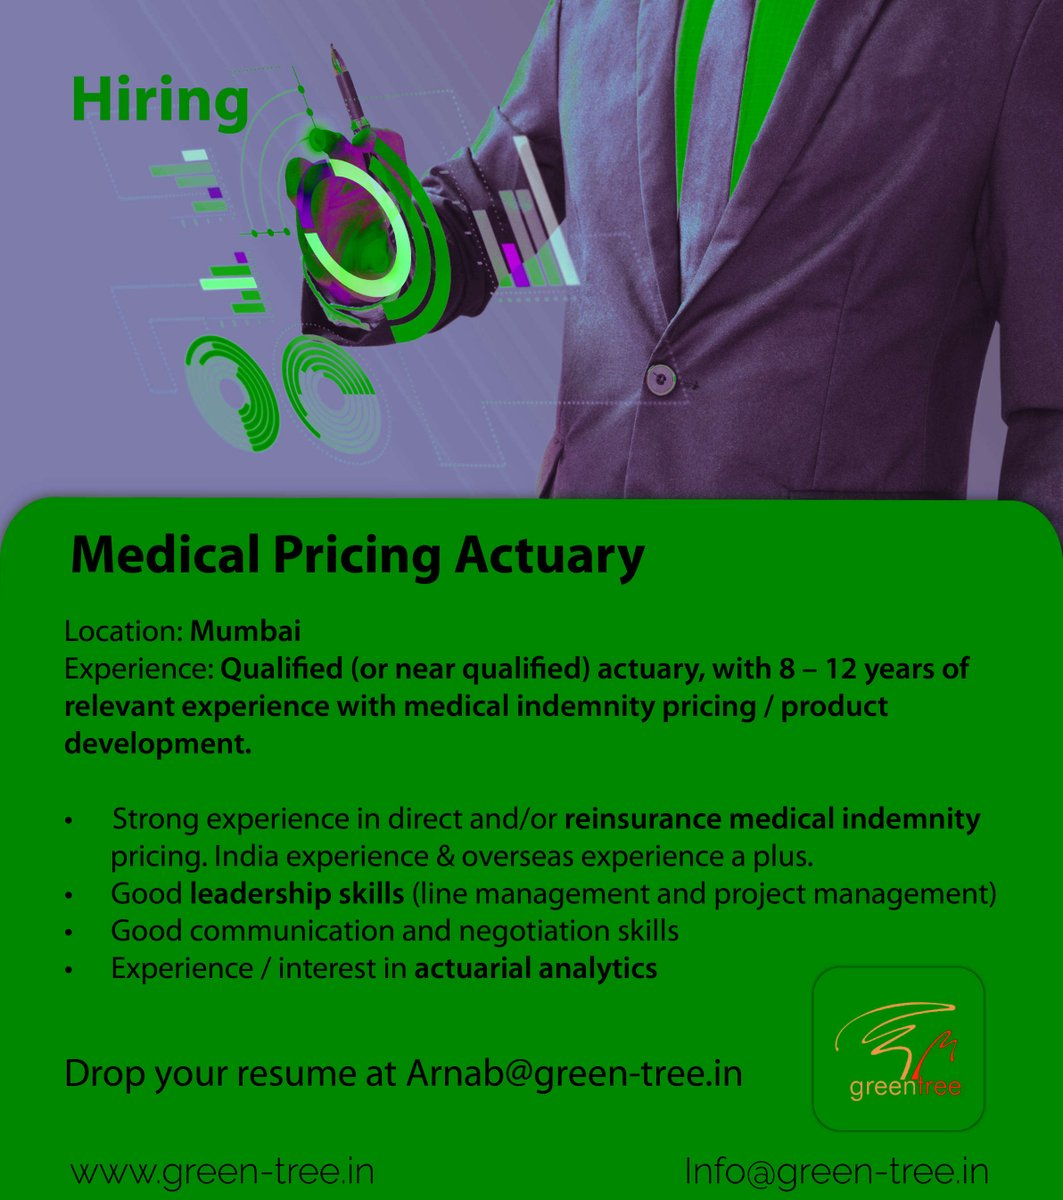 #WeareHiring Medical Pricing Actuary  #Comment Interested  Follow #Greentree for daily job updates! #actuaryjobs #lifeactuarial #riskmanagement #actuarialjobs #actuarialscience #actuariat #capitalmodeling #valuation #insuranceclaim #bankingandfinance #dataanalytics #spss https://t.co/kVYwvSCWBT